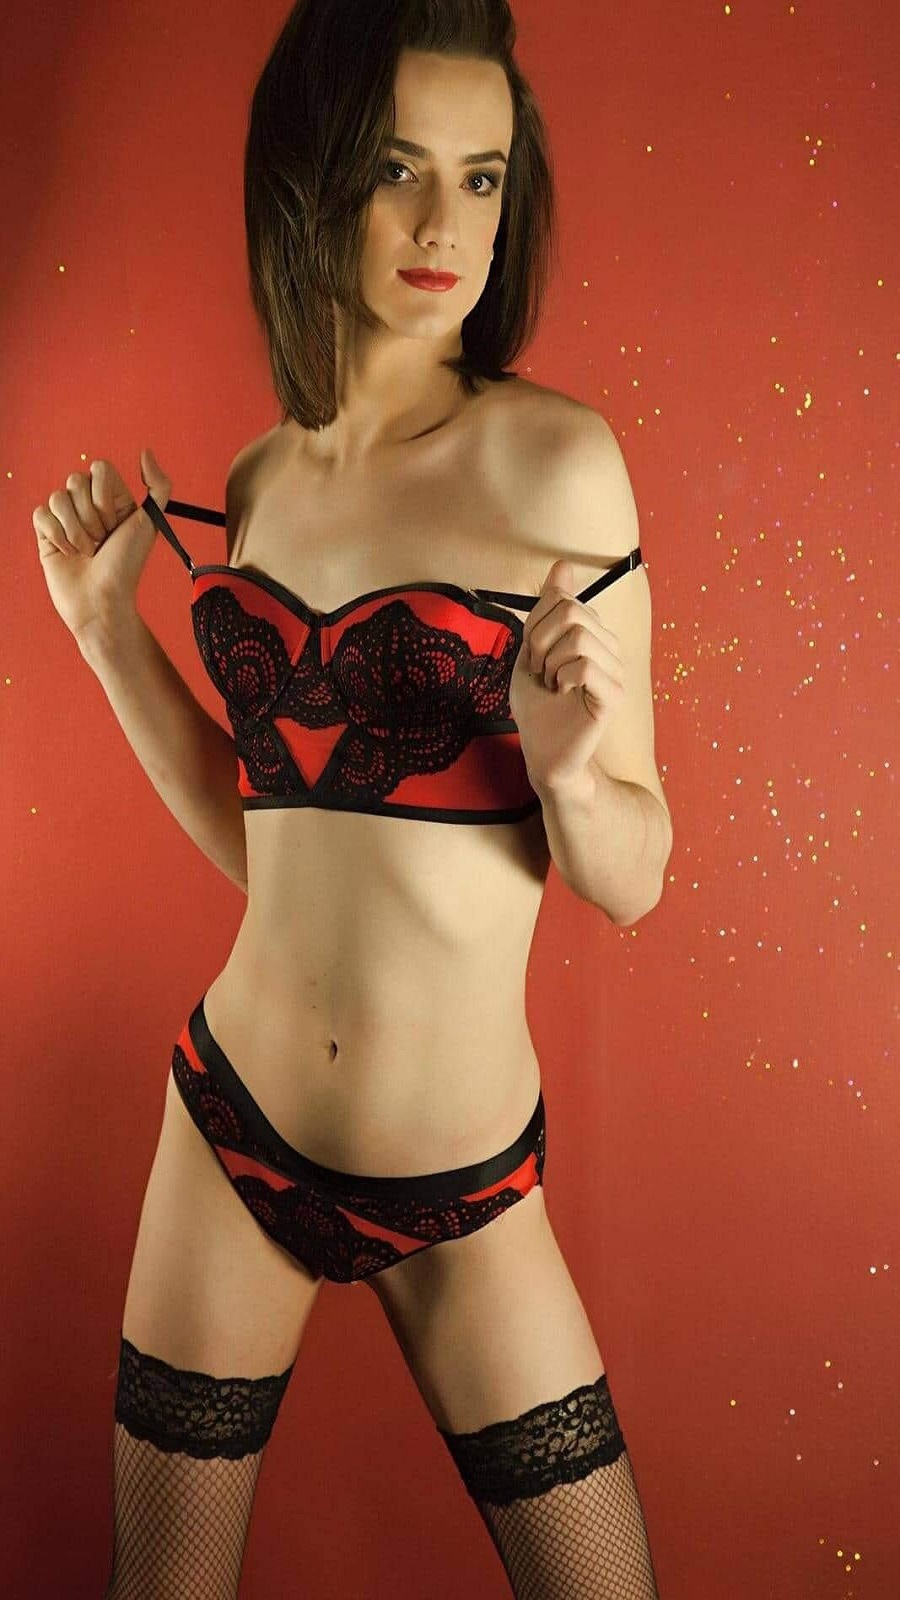 If you are looking for the perfect companion tonight give us a call on 07412621234 to book Lucy for the best night of your life.